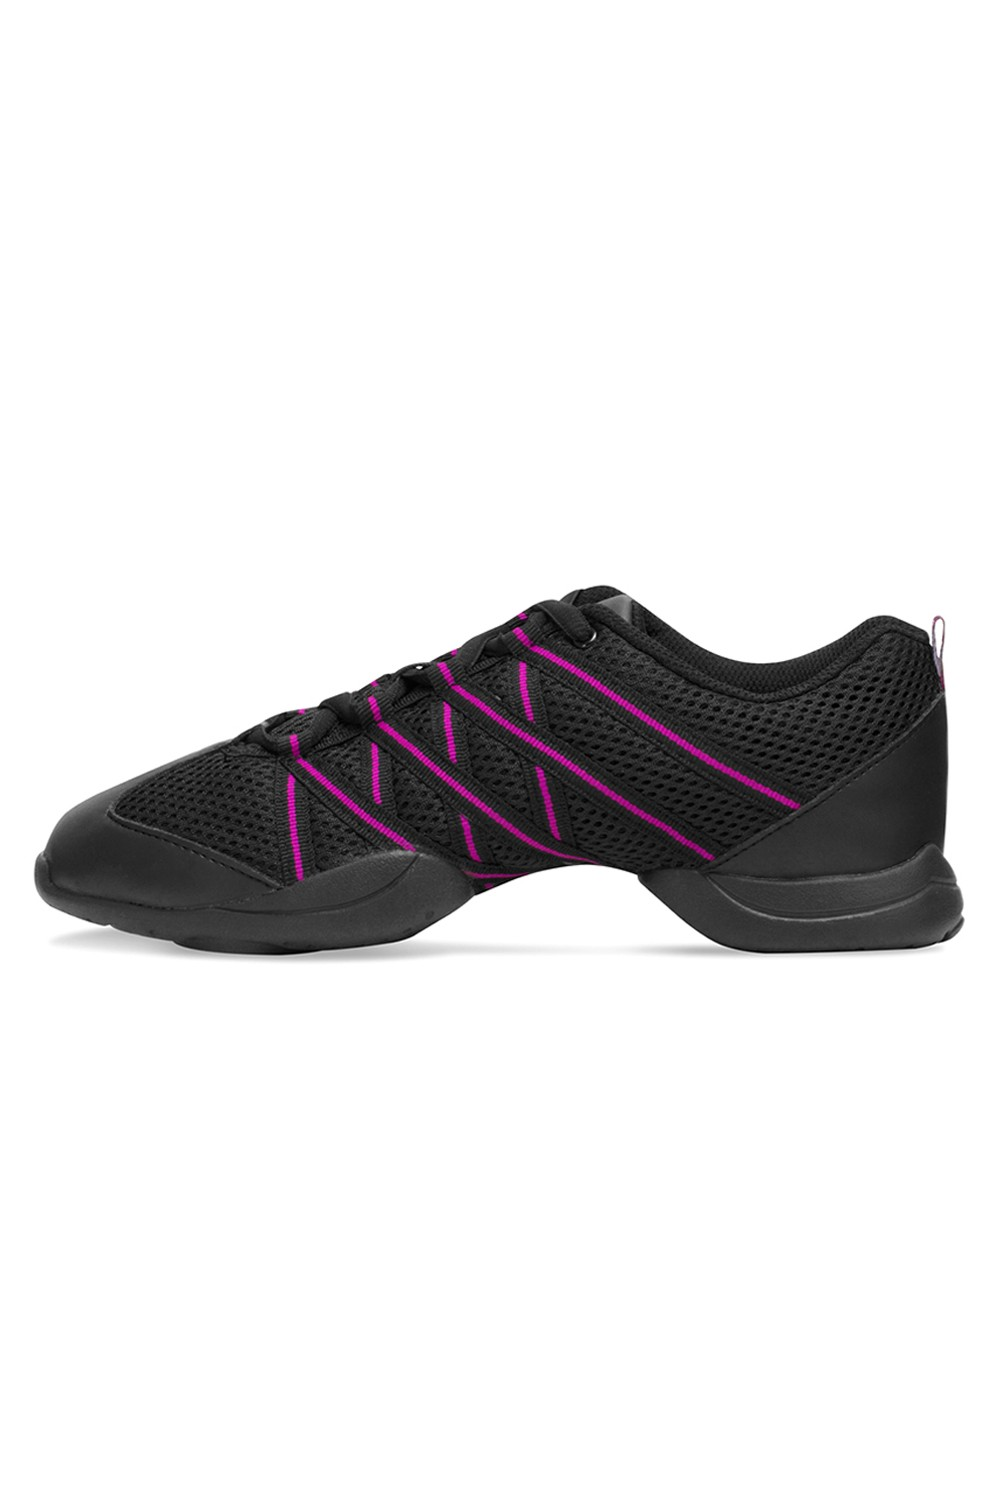 Criss Cross - Men's Men's Dance Sneakers